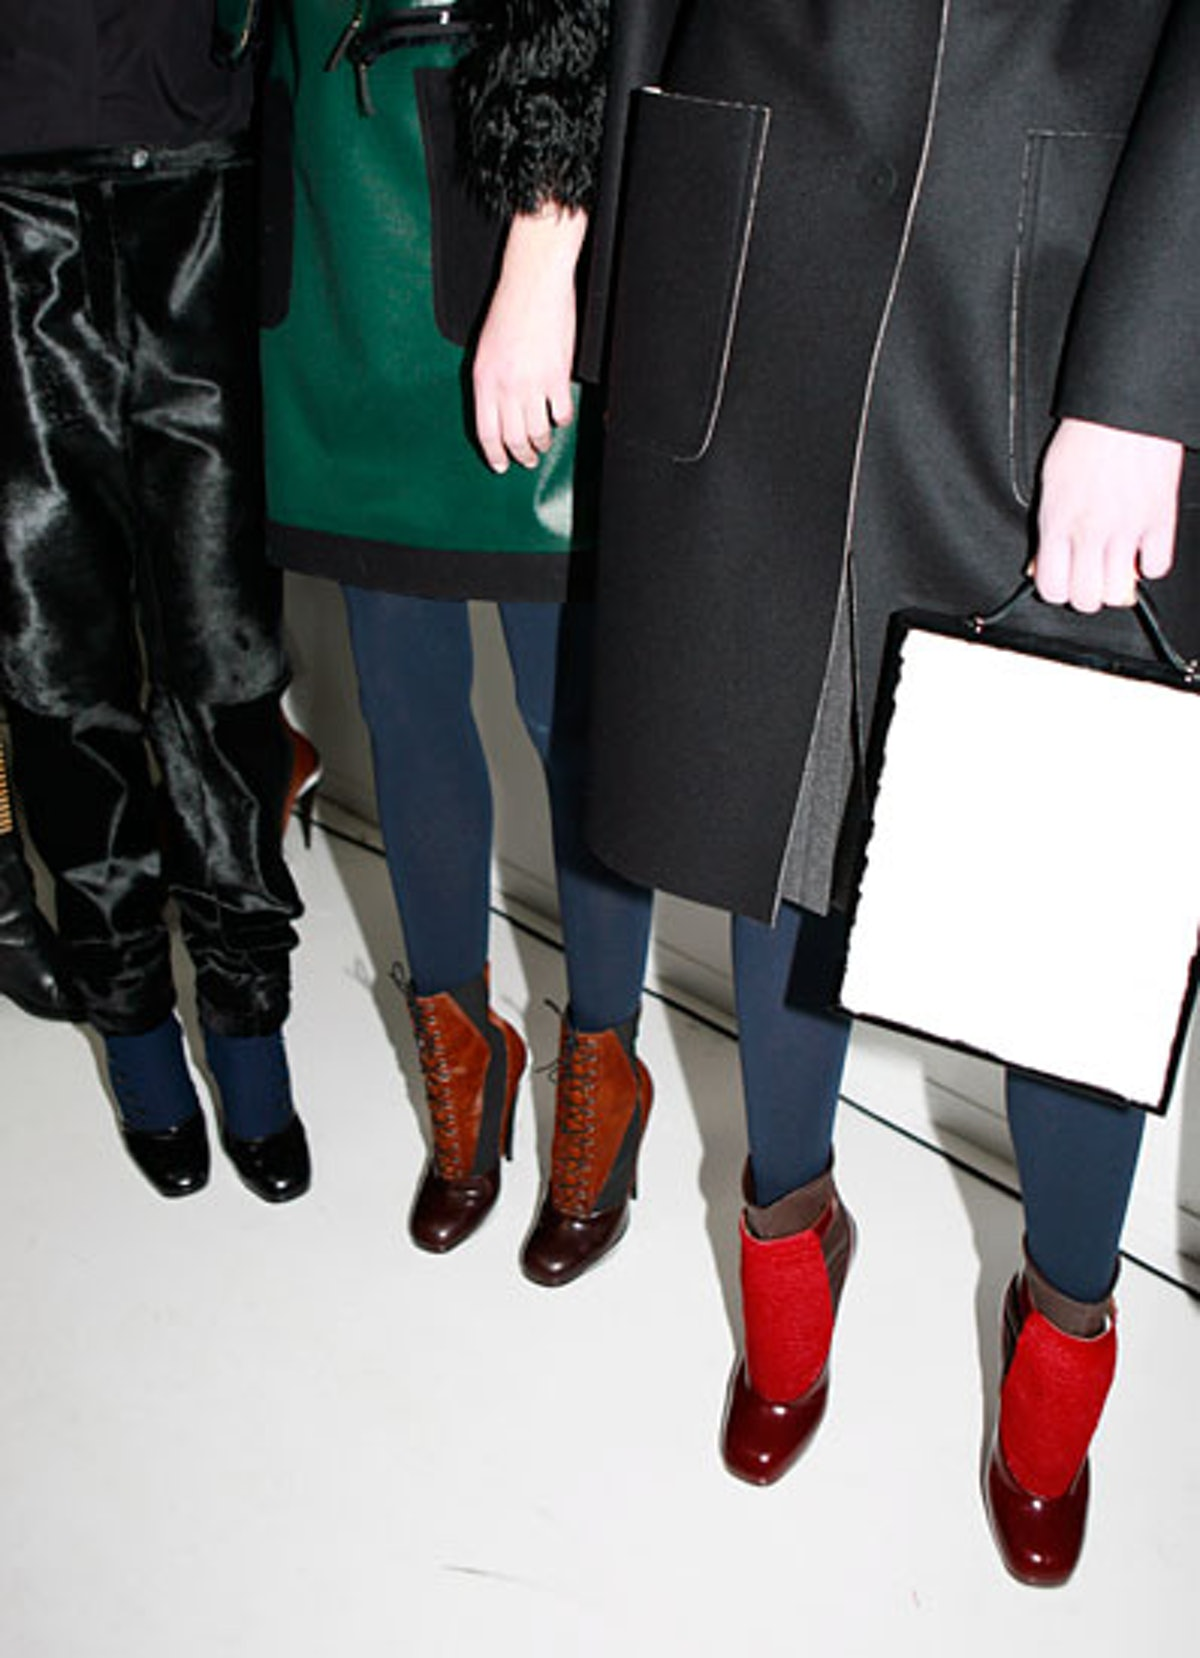 acss-fall-2012-accessories-roundup-01-v.jpg